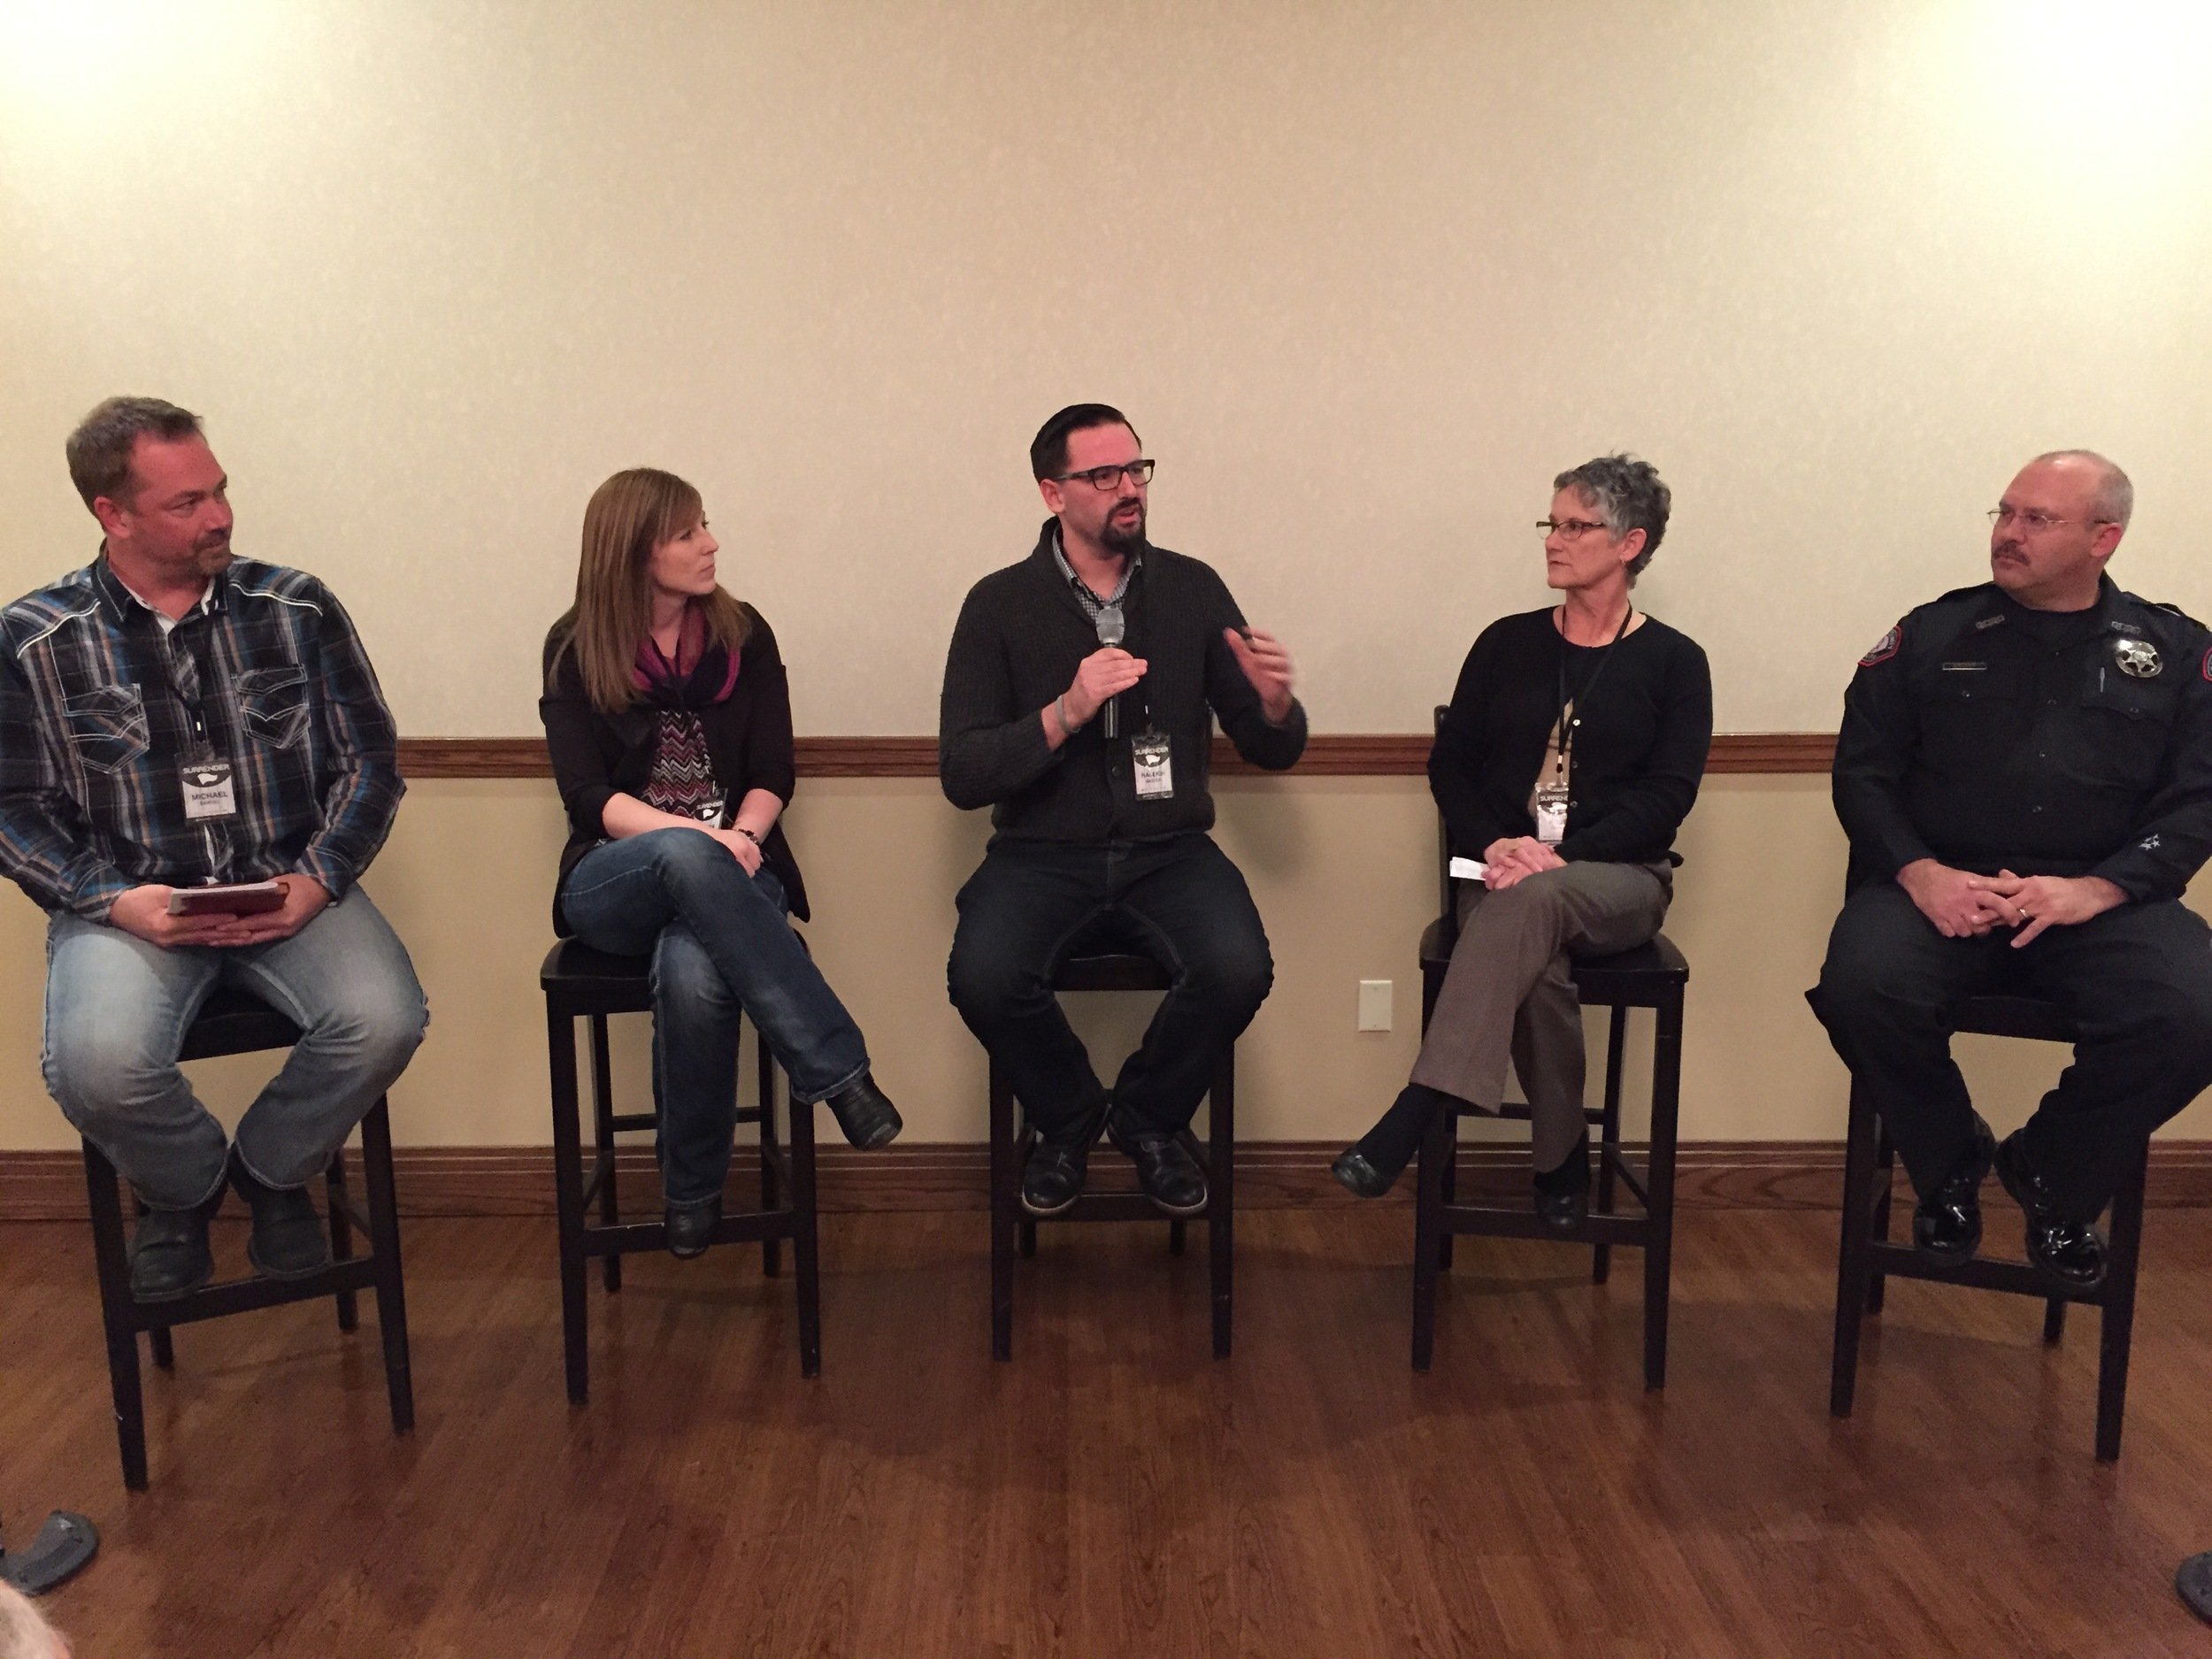 Raleigh Sadler in the center speaking on a panel concerning the role of the church in fight human trafficking in Springfield, Missouri.